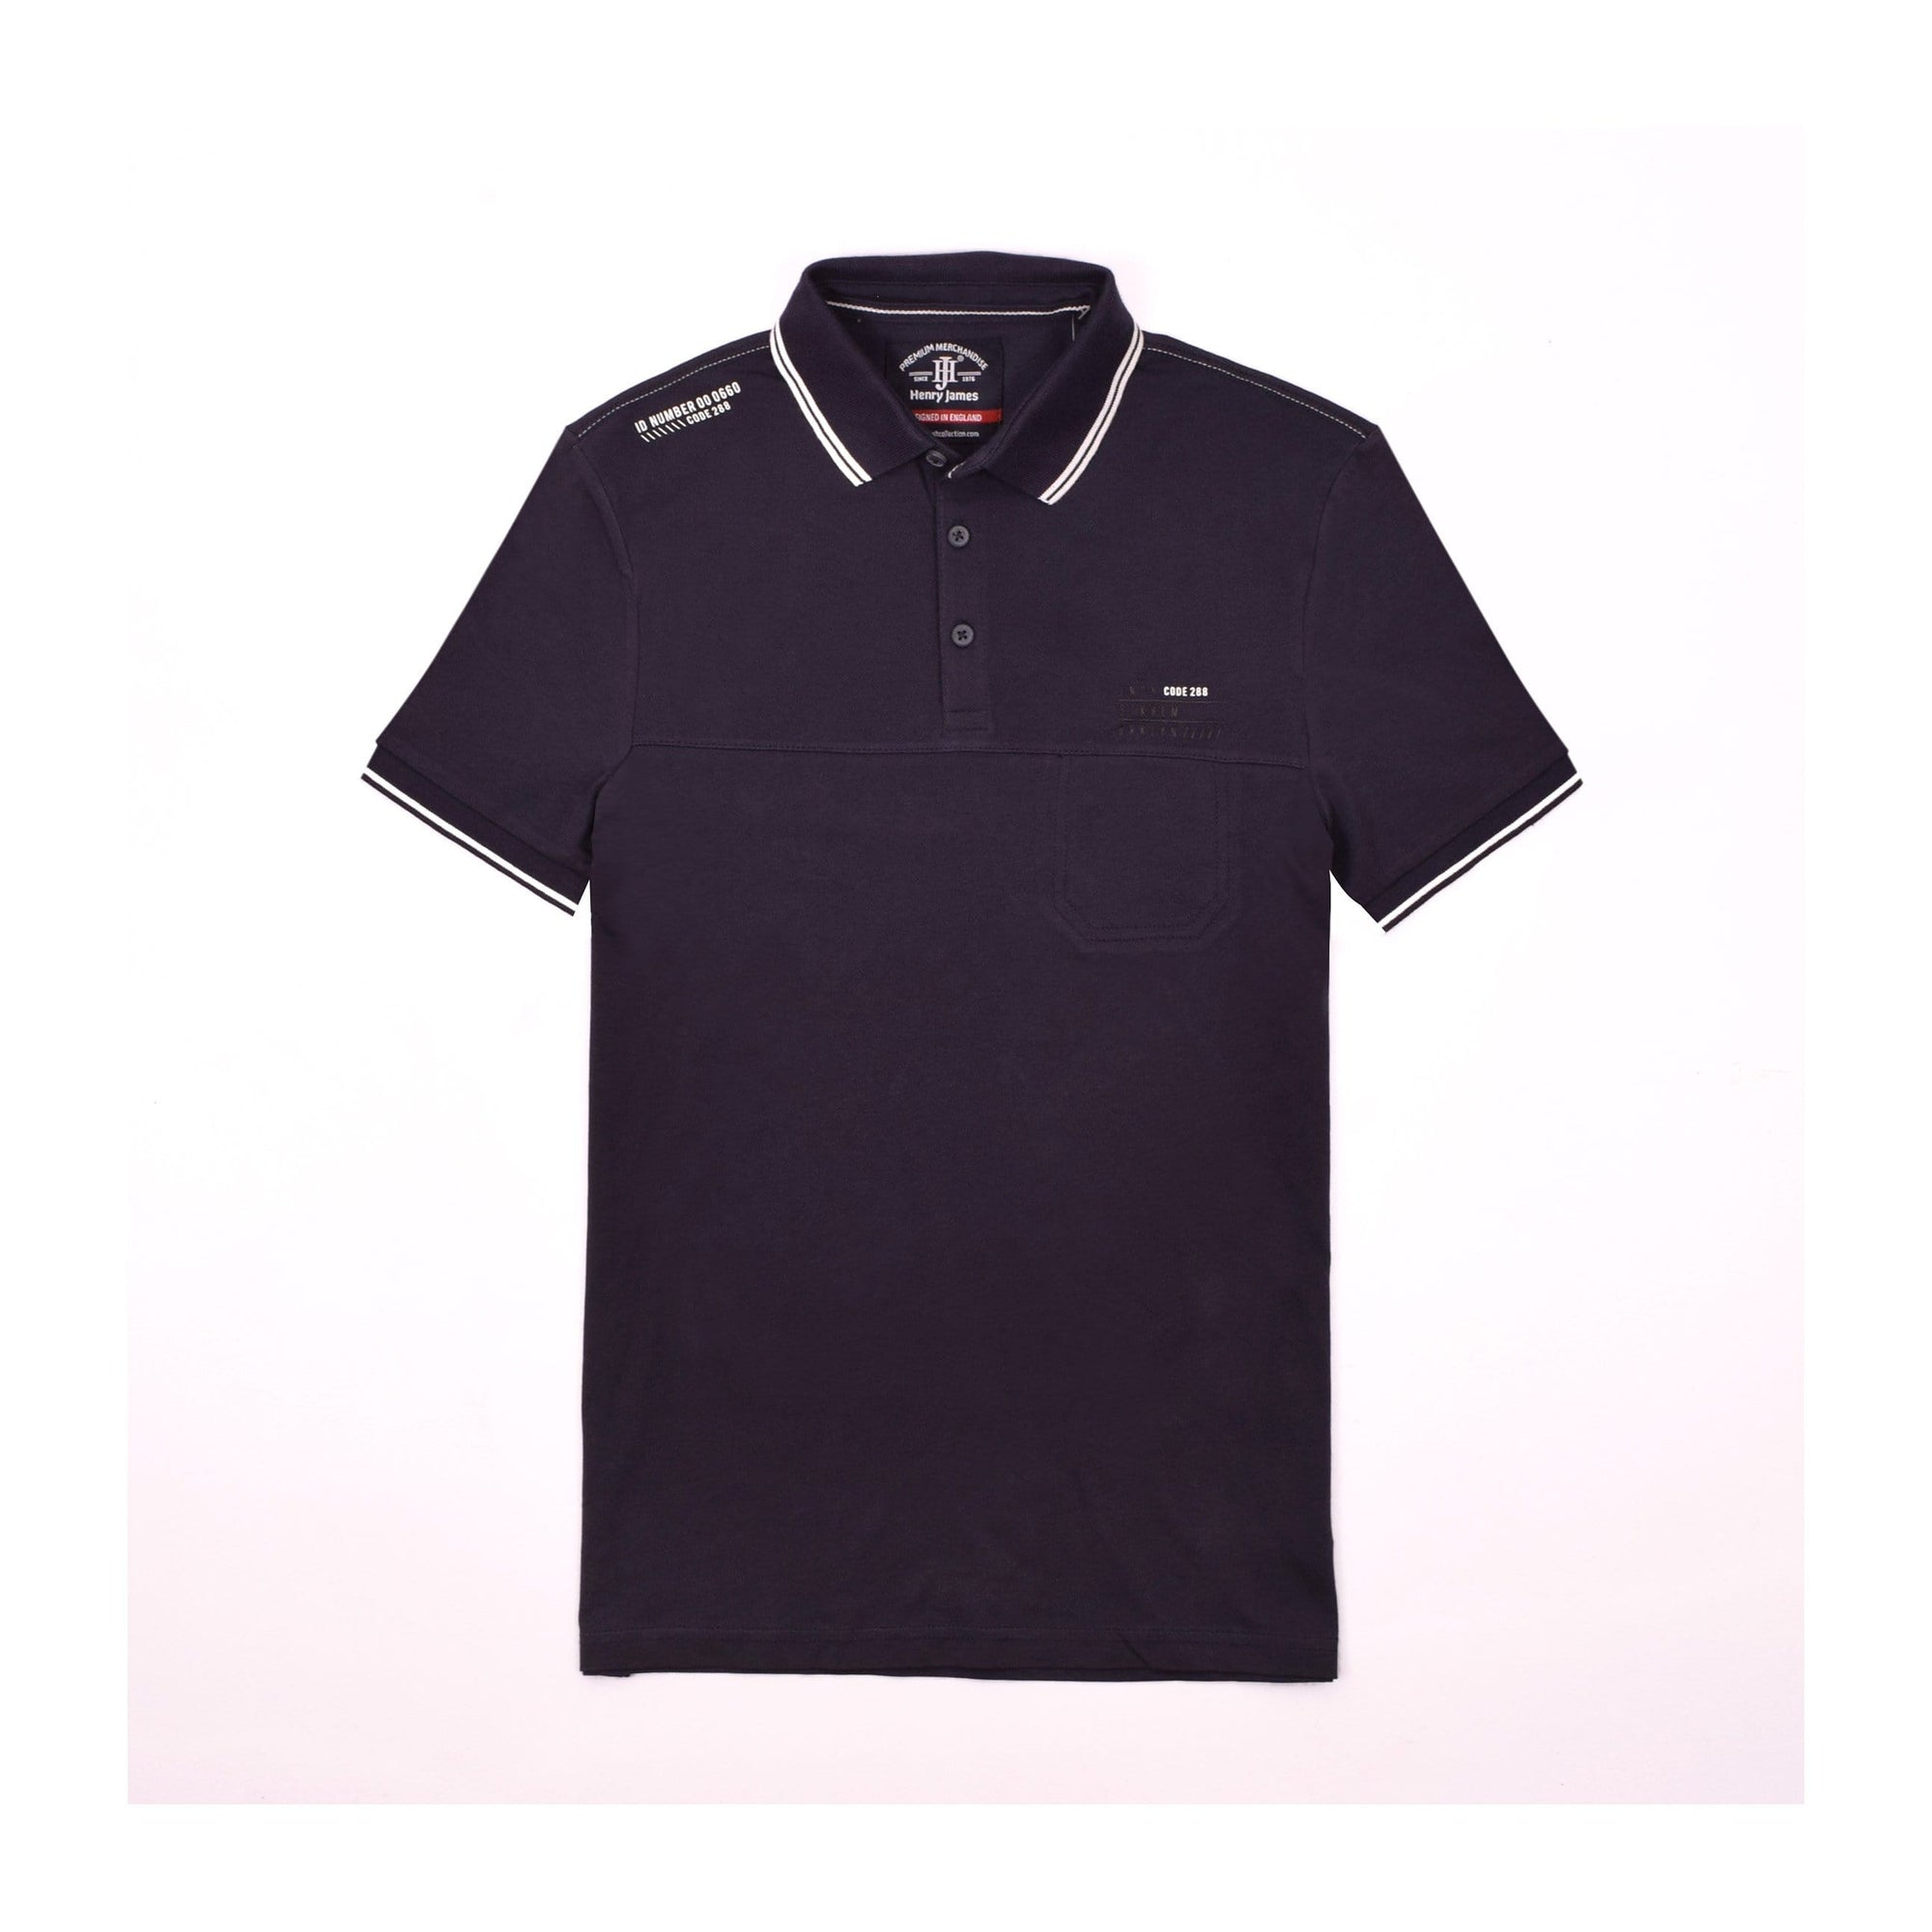 Henry James Men's Polo Shirt Dark Navy / S Henry James BRKLYN Short Sleeve Polo Shirt